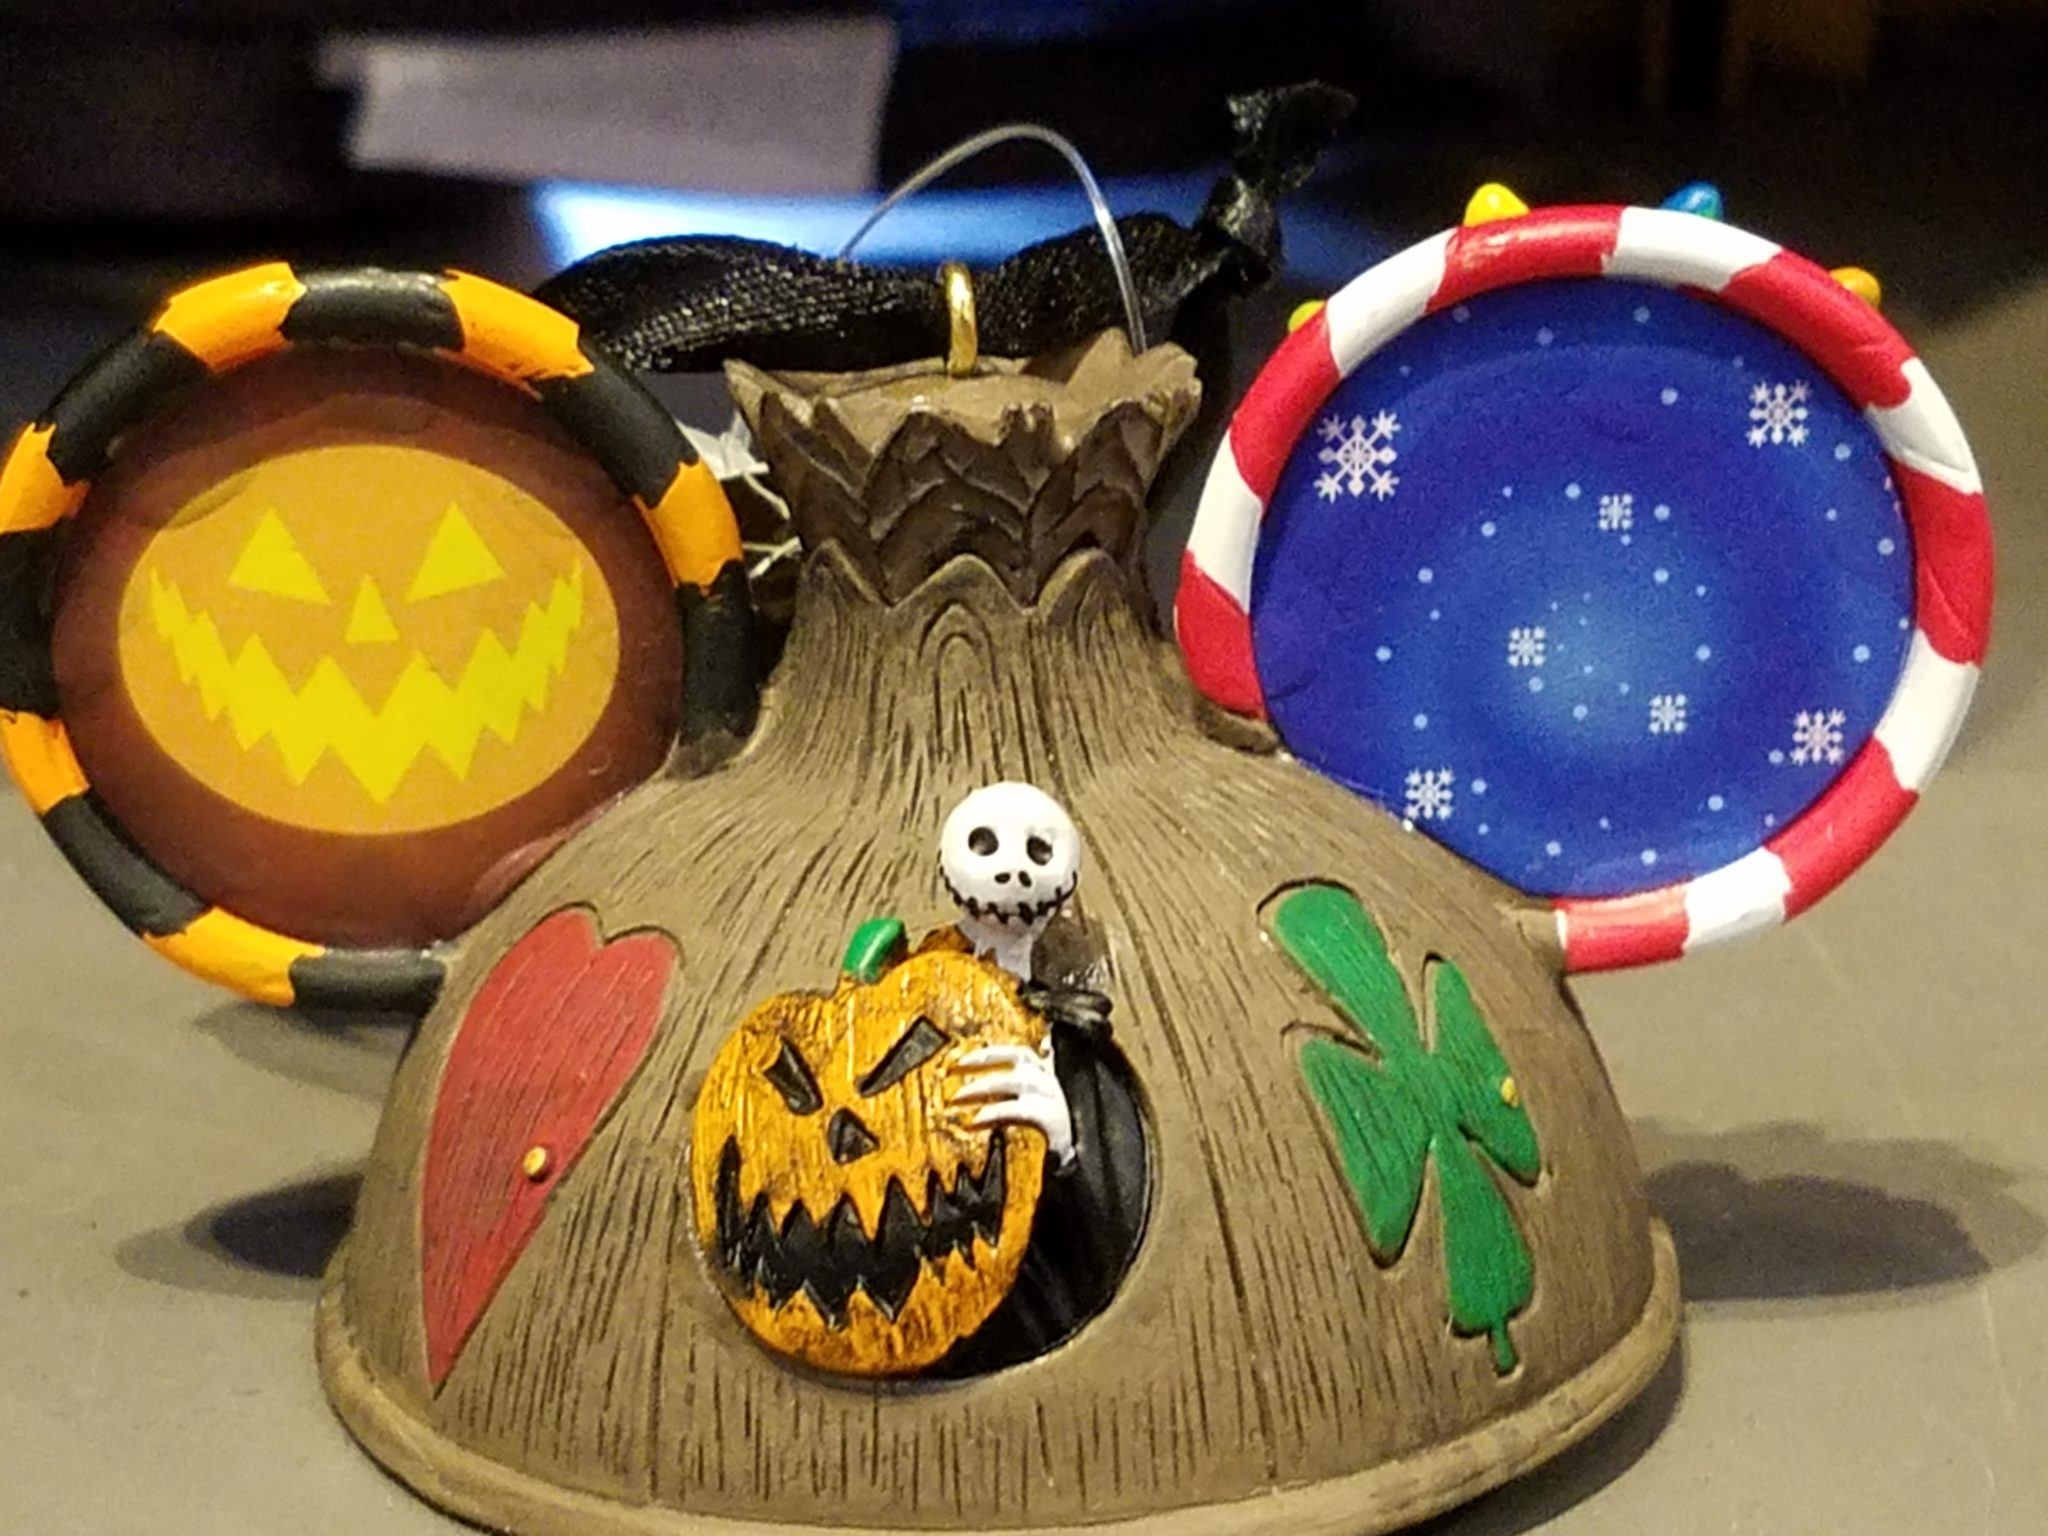 Decorate For Halloween With These Fun Nightmare Before Christmas ...